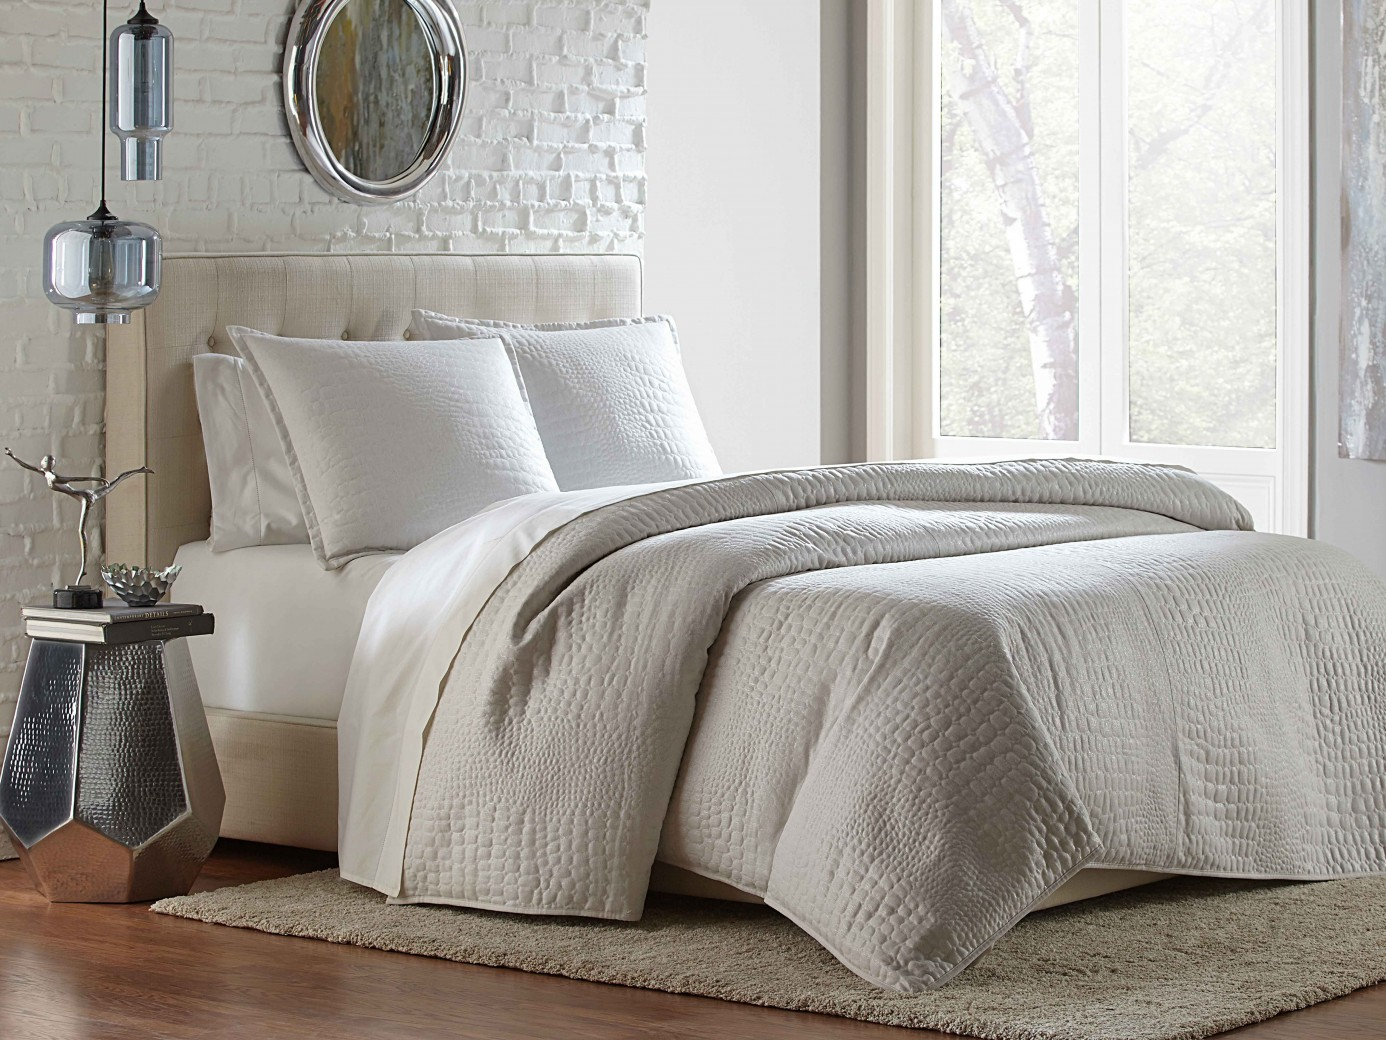 Michael Amini Brilliance Coverlet Duvet Bedding Set By Aico